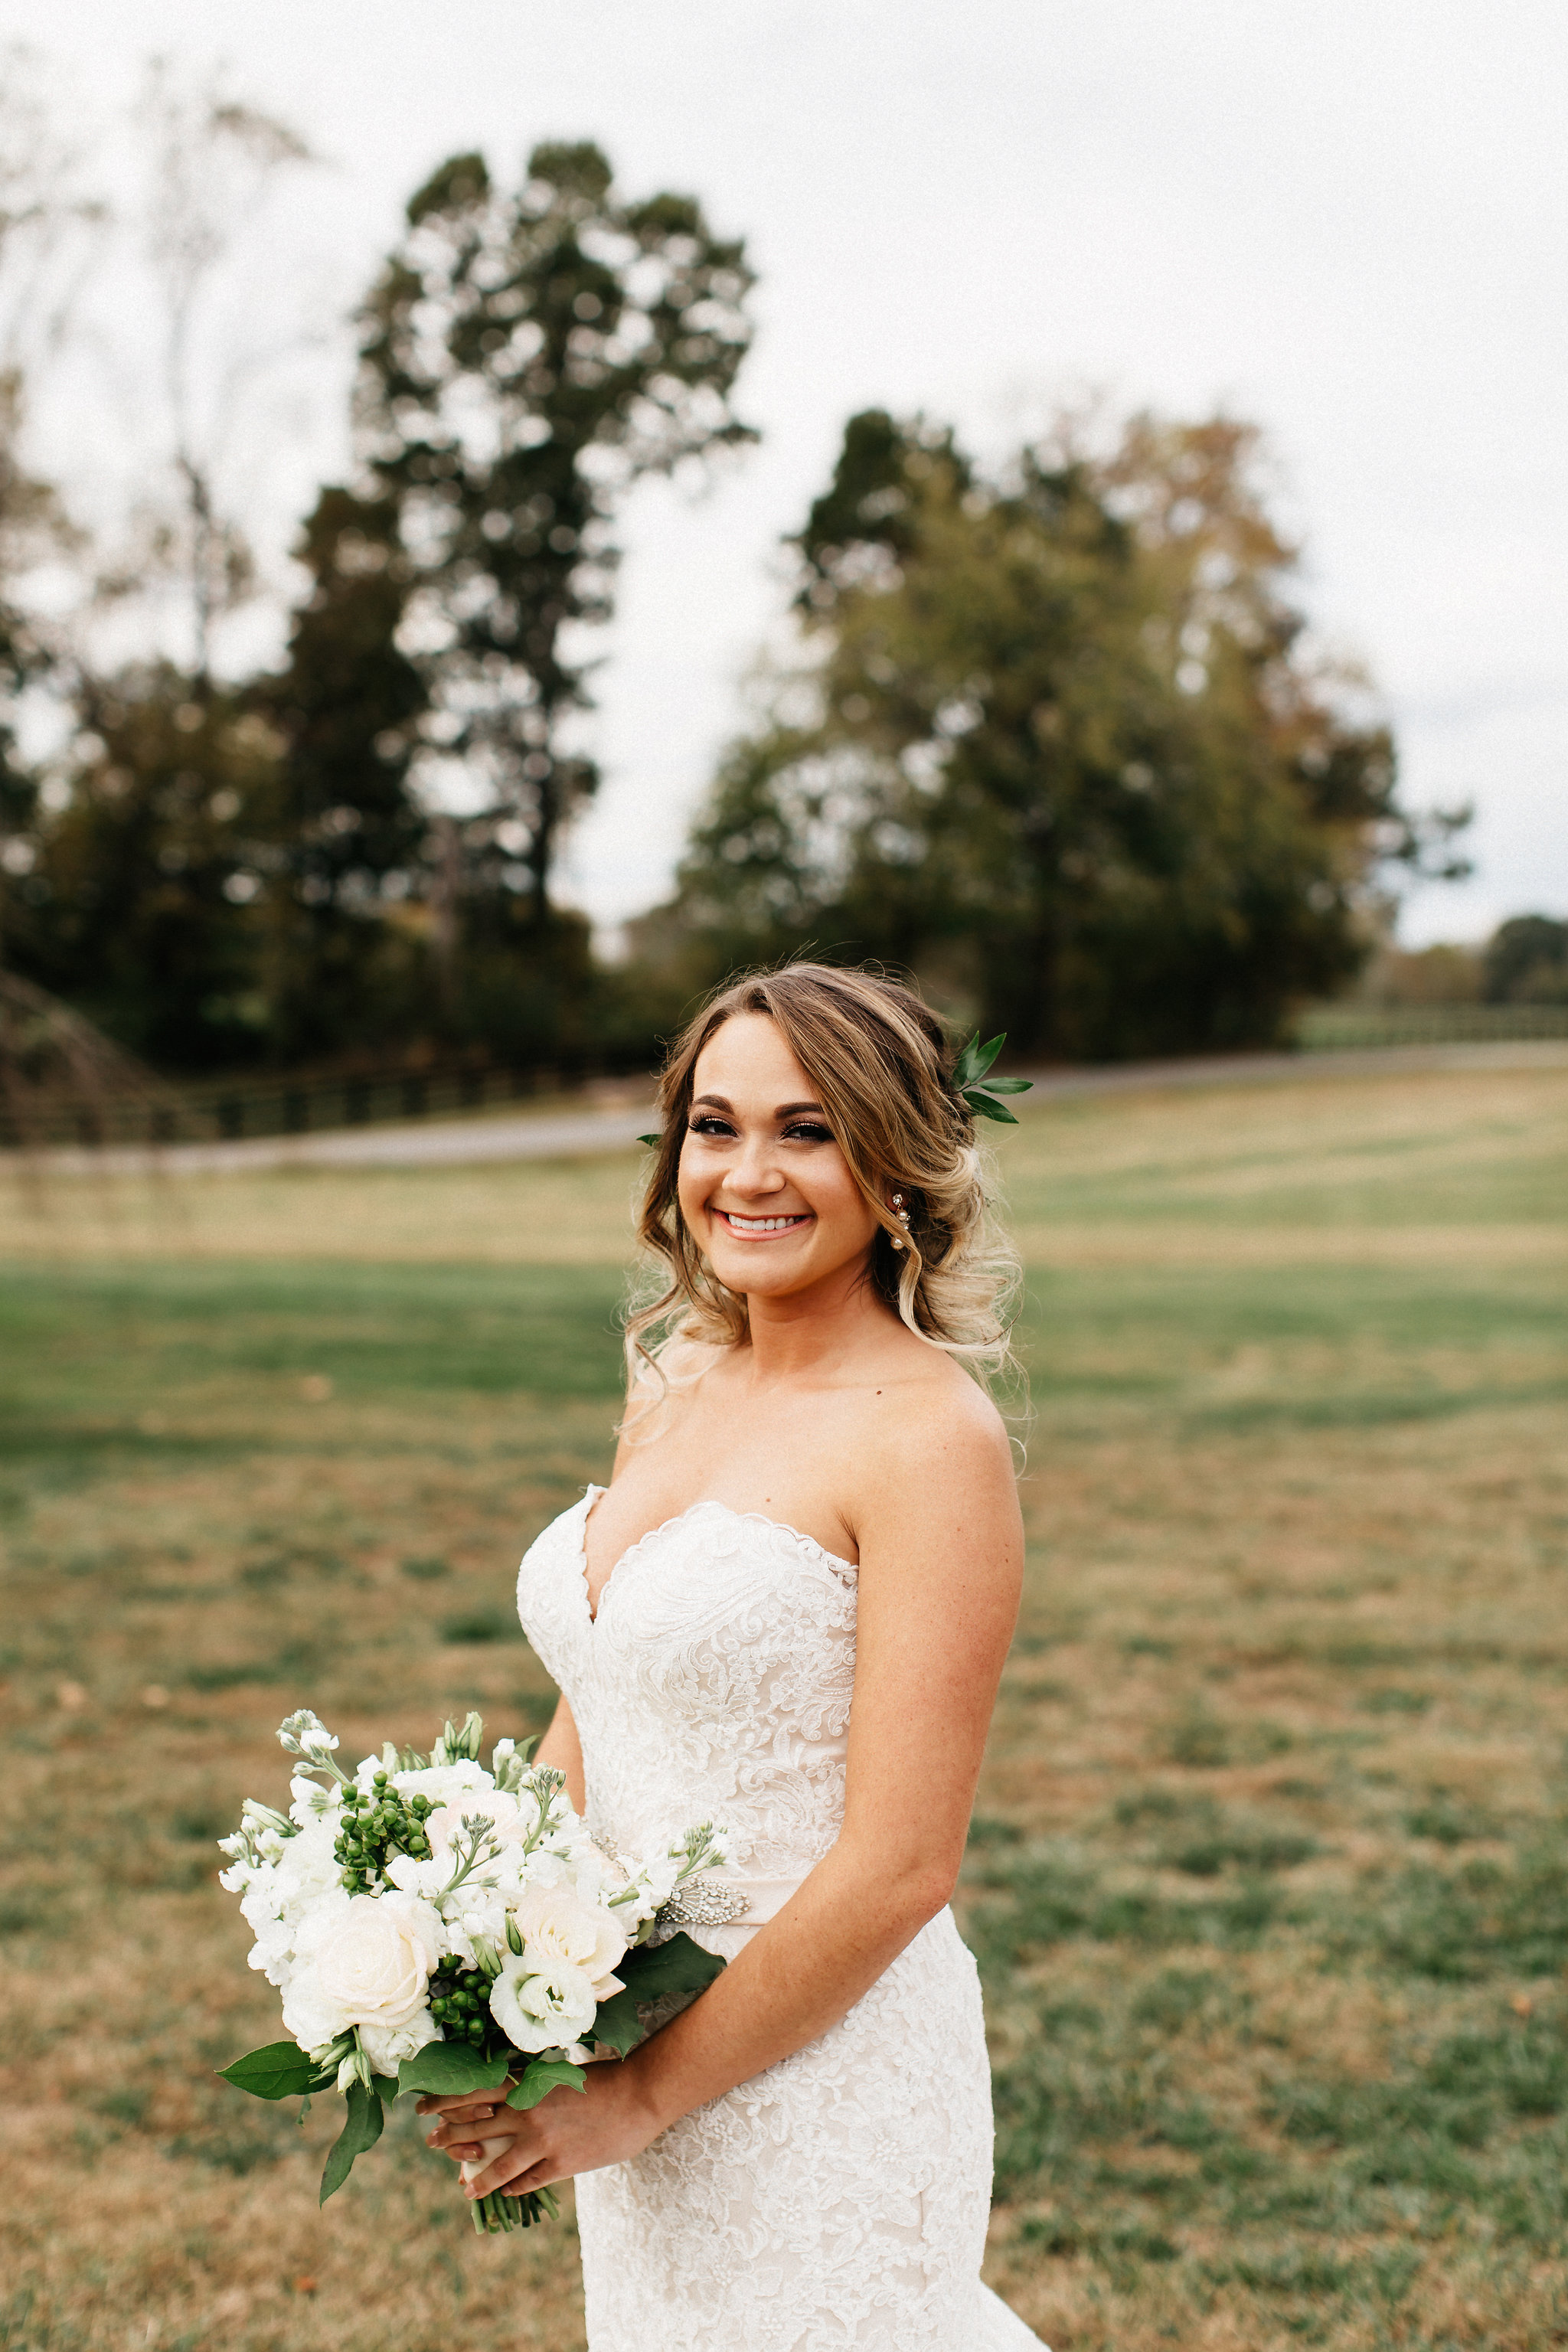 Ashley&NathanMarried2017-11-10at19.26.47PM35.jpg